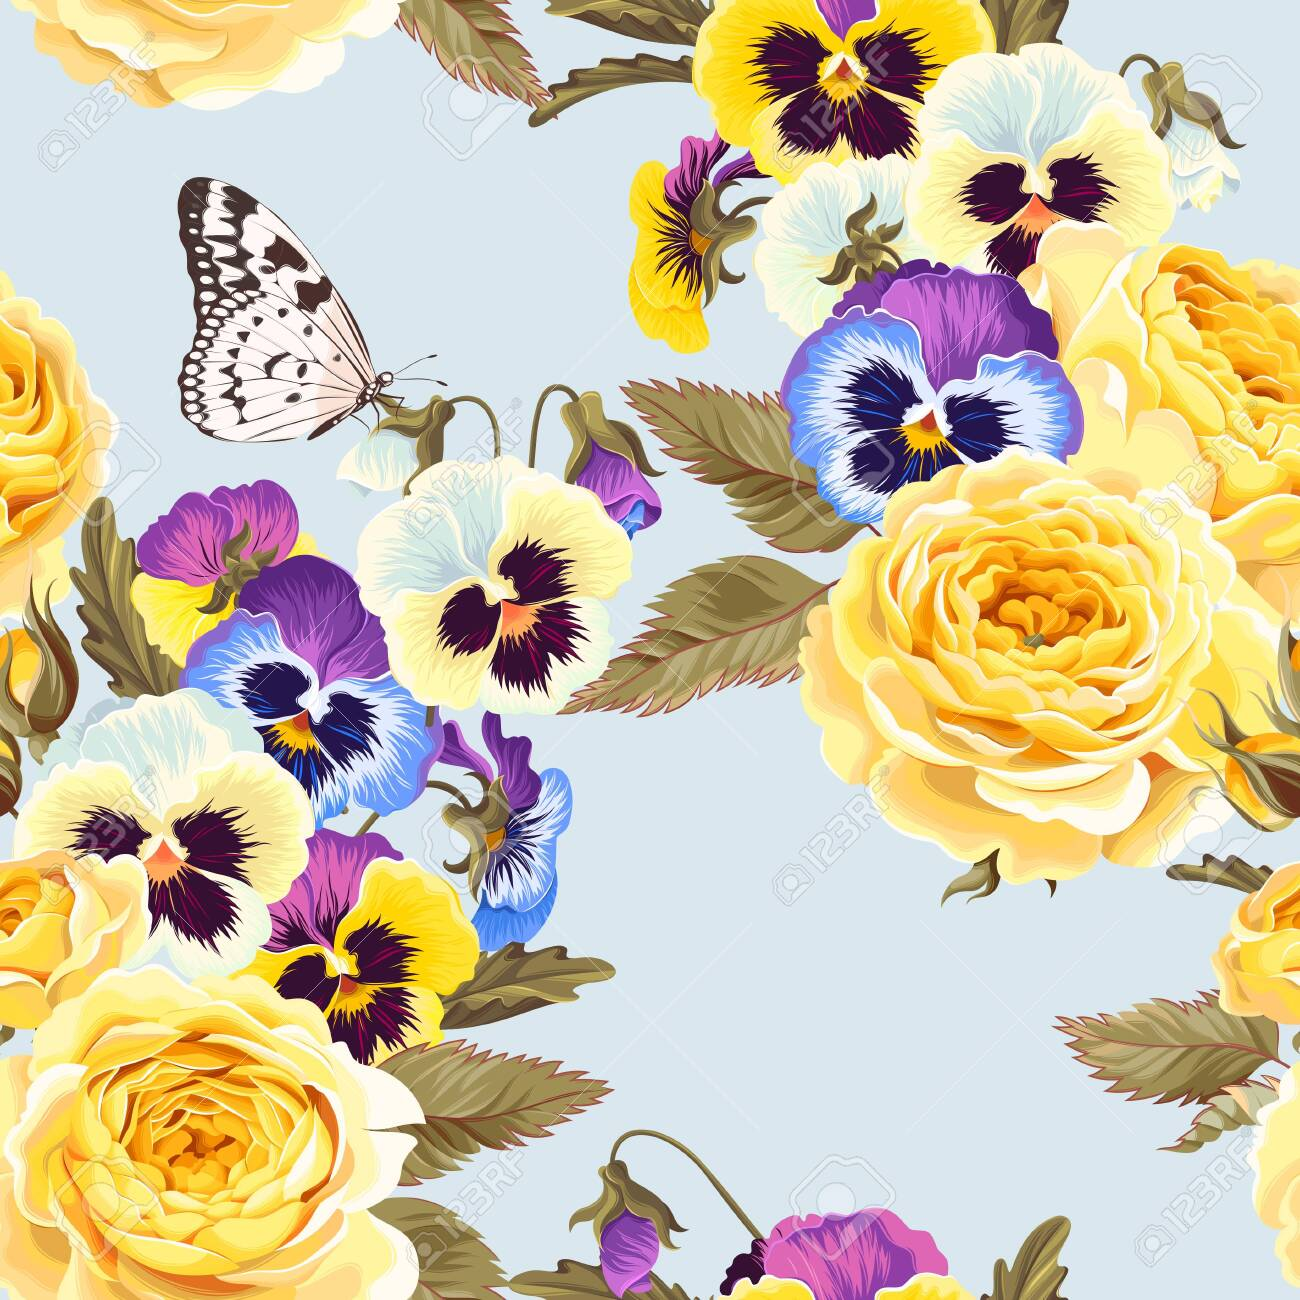 Vector seamless pattern with high detailed yellow roses and varicolored pansies - 124113489